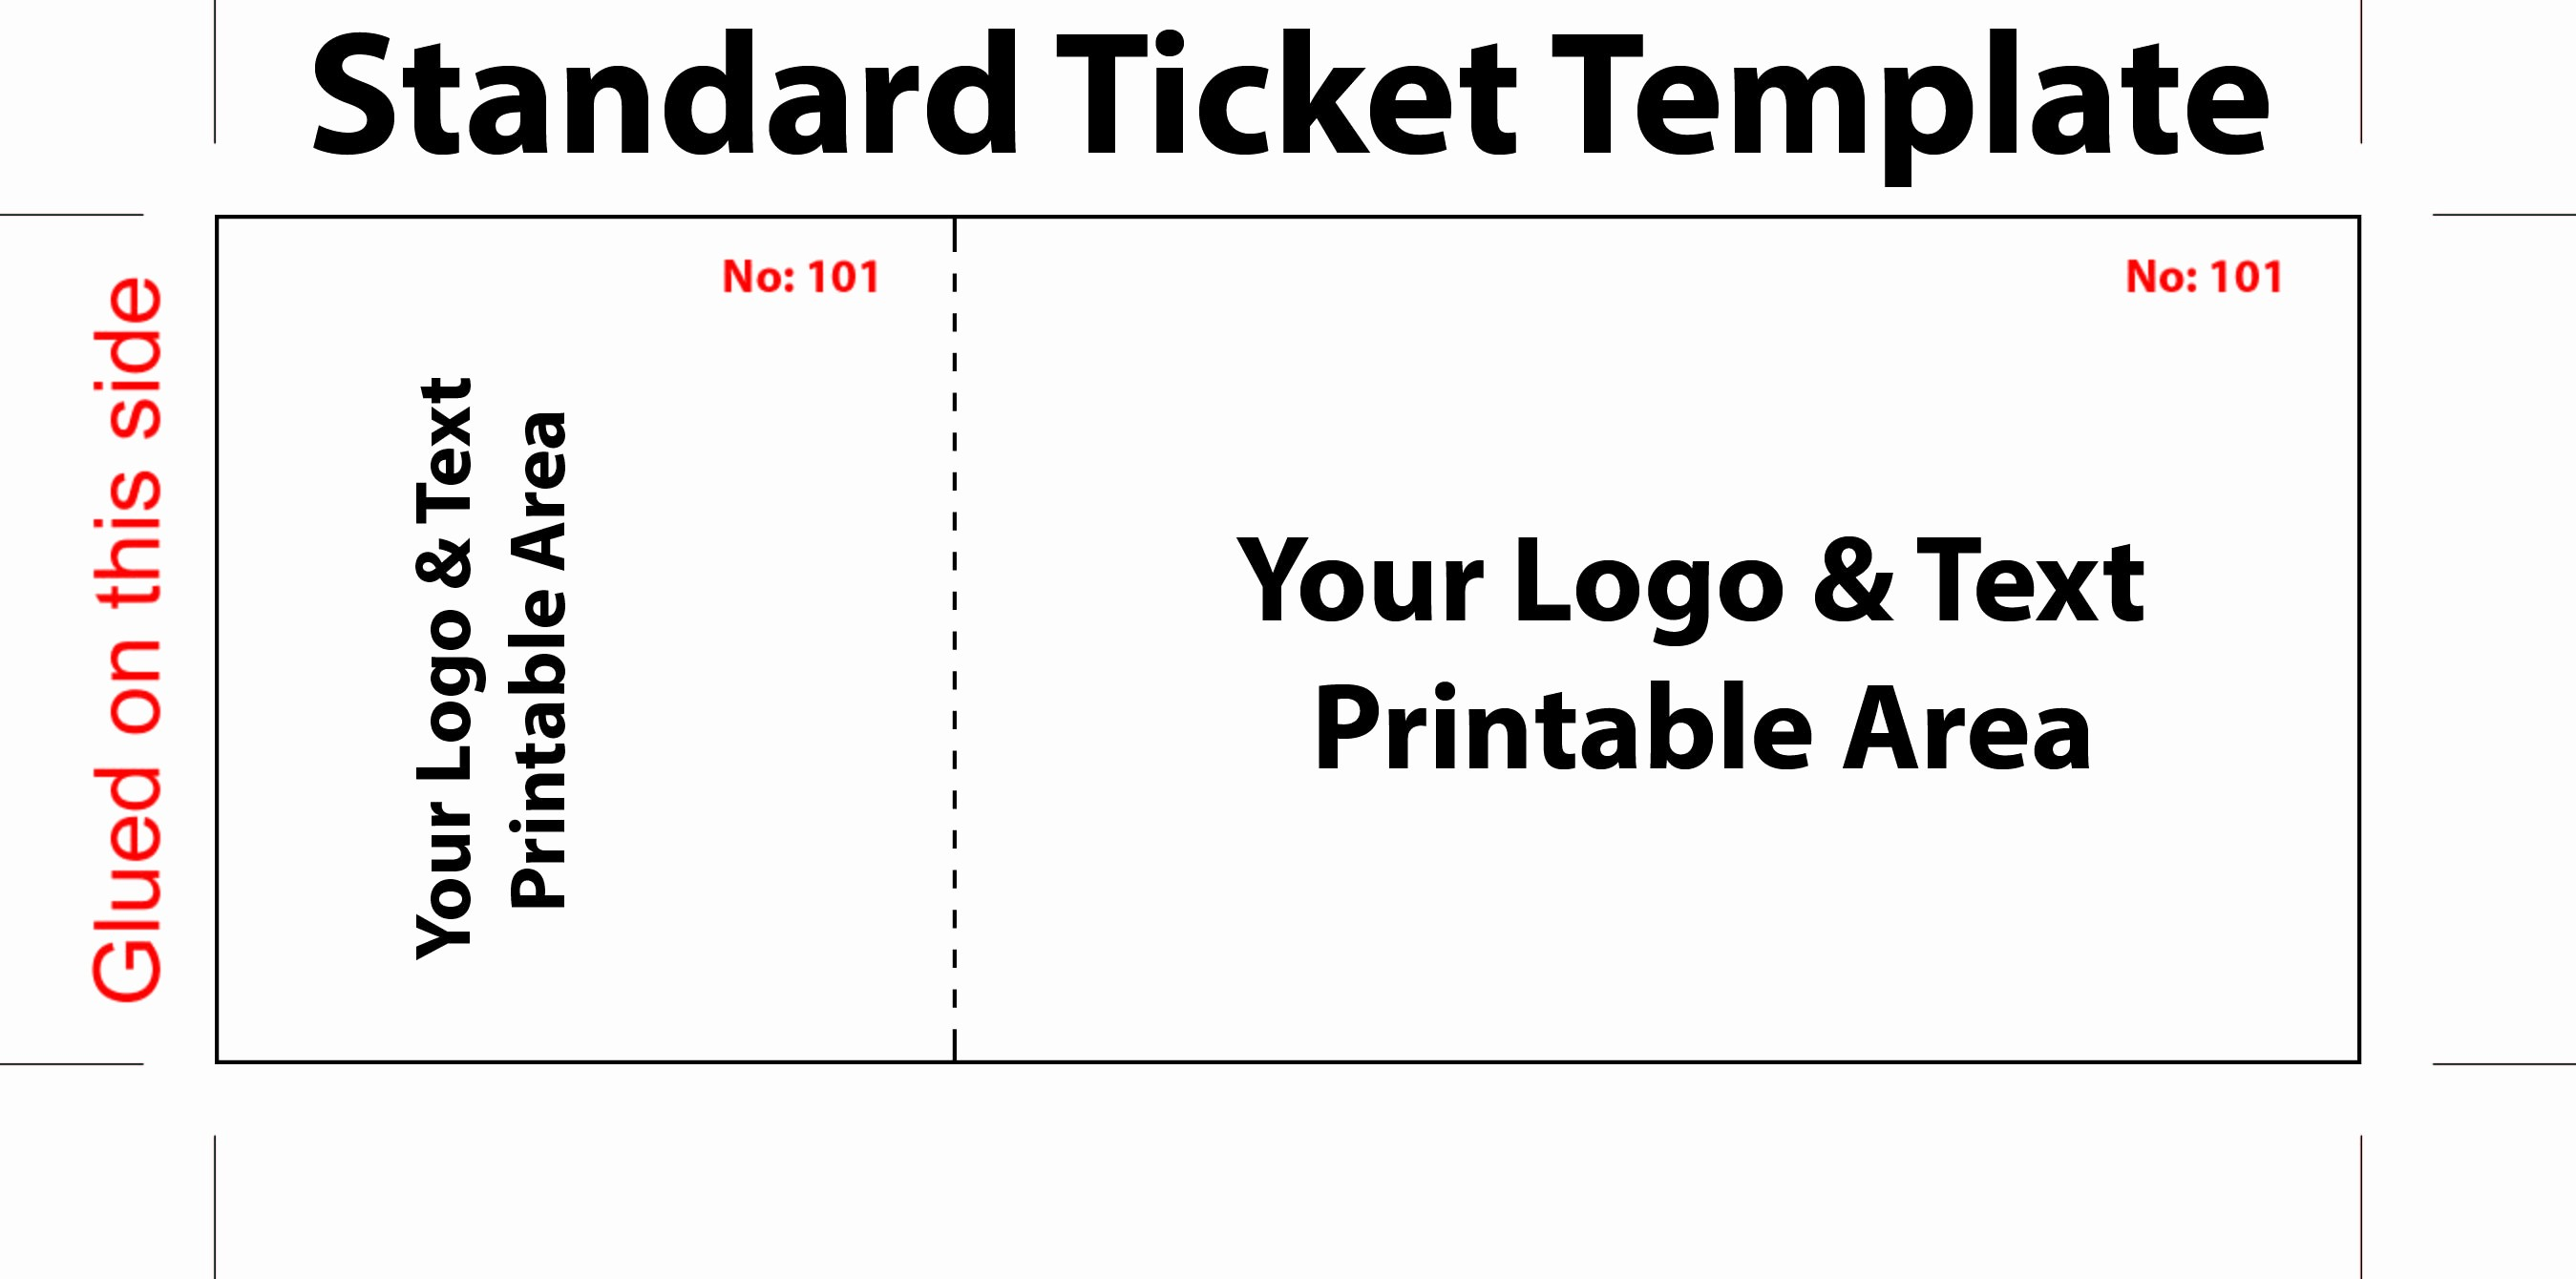 Concert Tickets Template Free Download Luxury Free Editable Standard Ticket Template Example for Concert